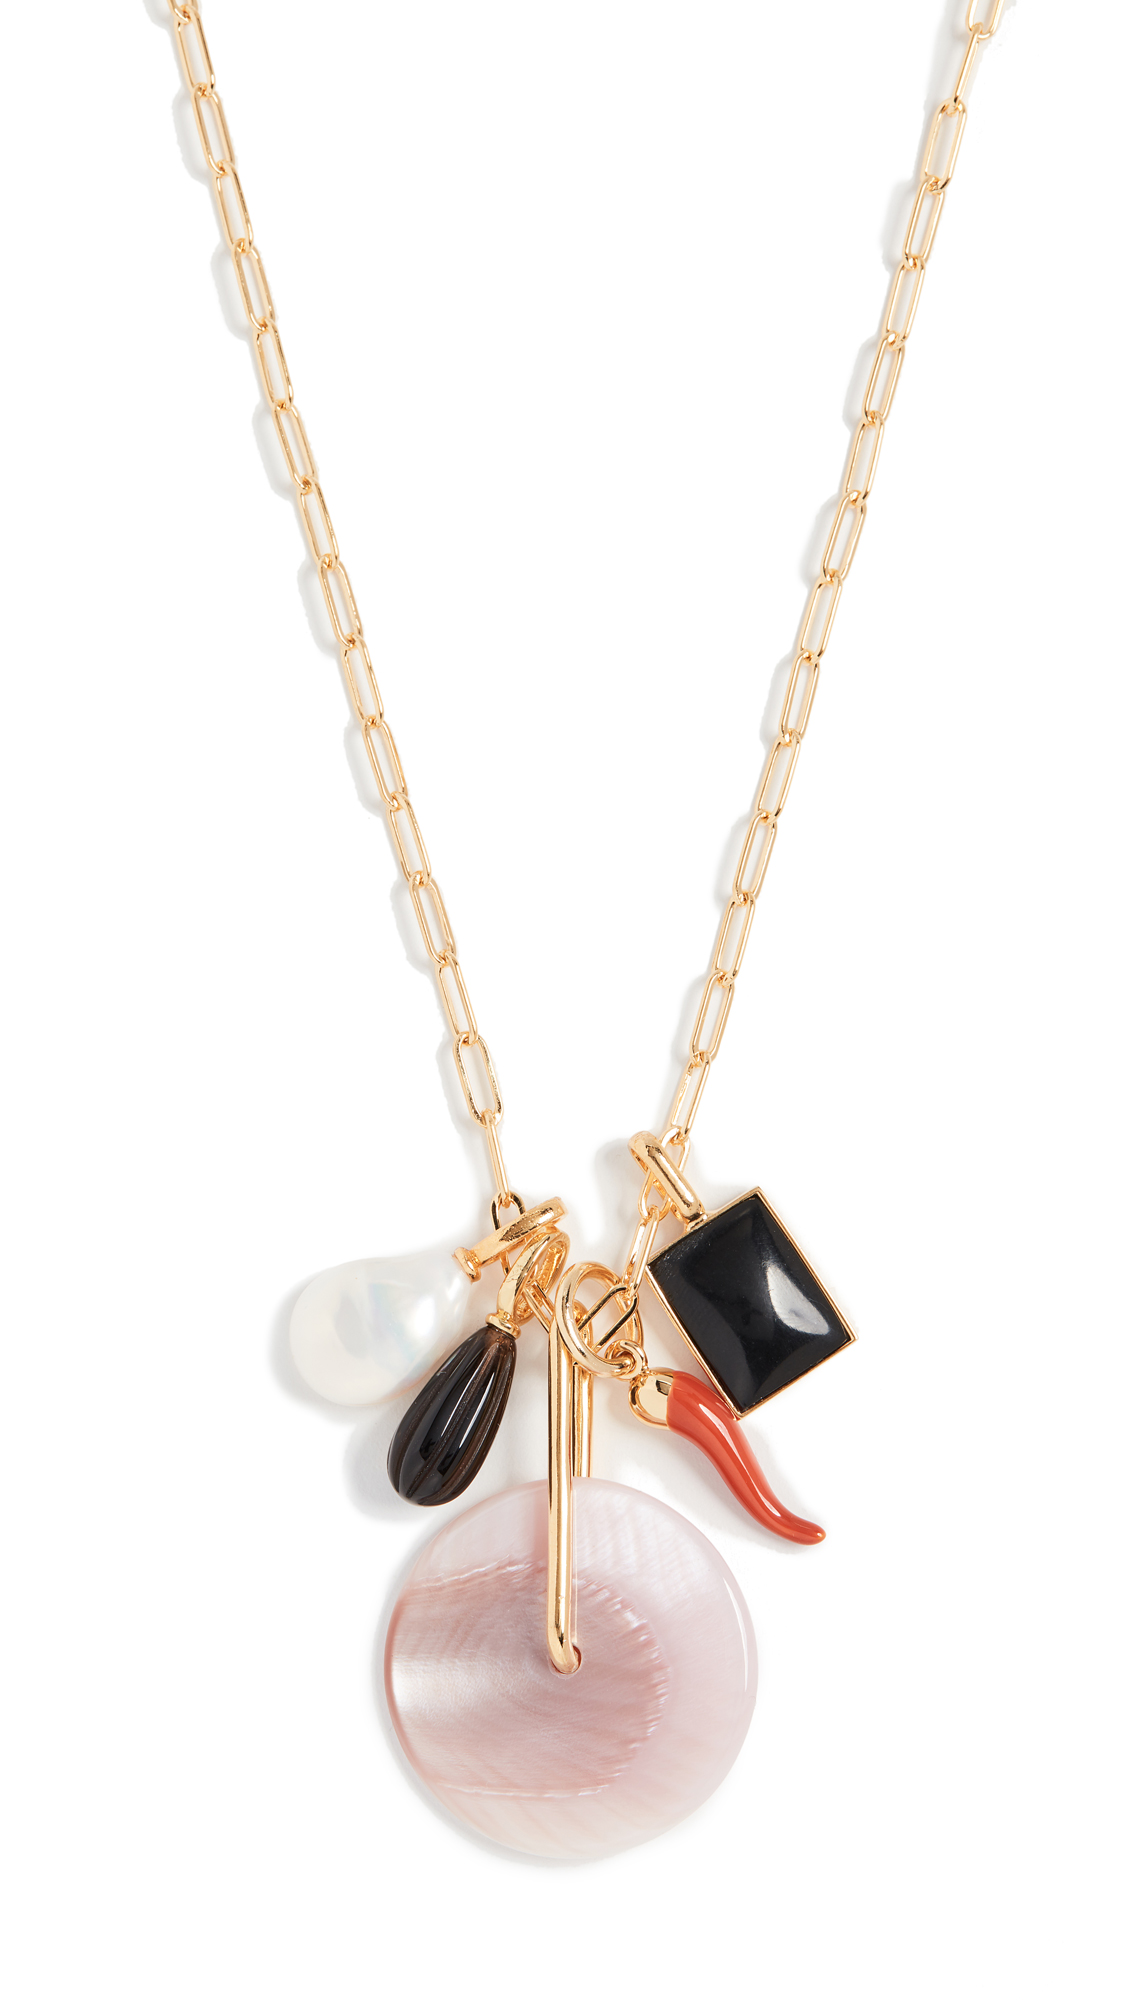 Lizzie Fortunato Pink City Charm Necklace In Gold/Multi